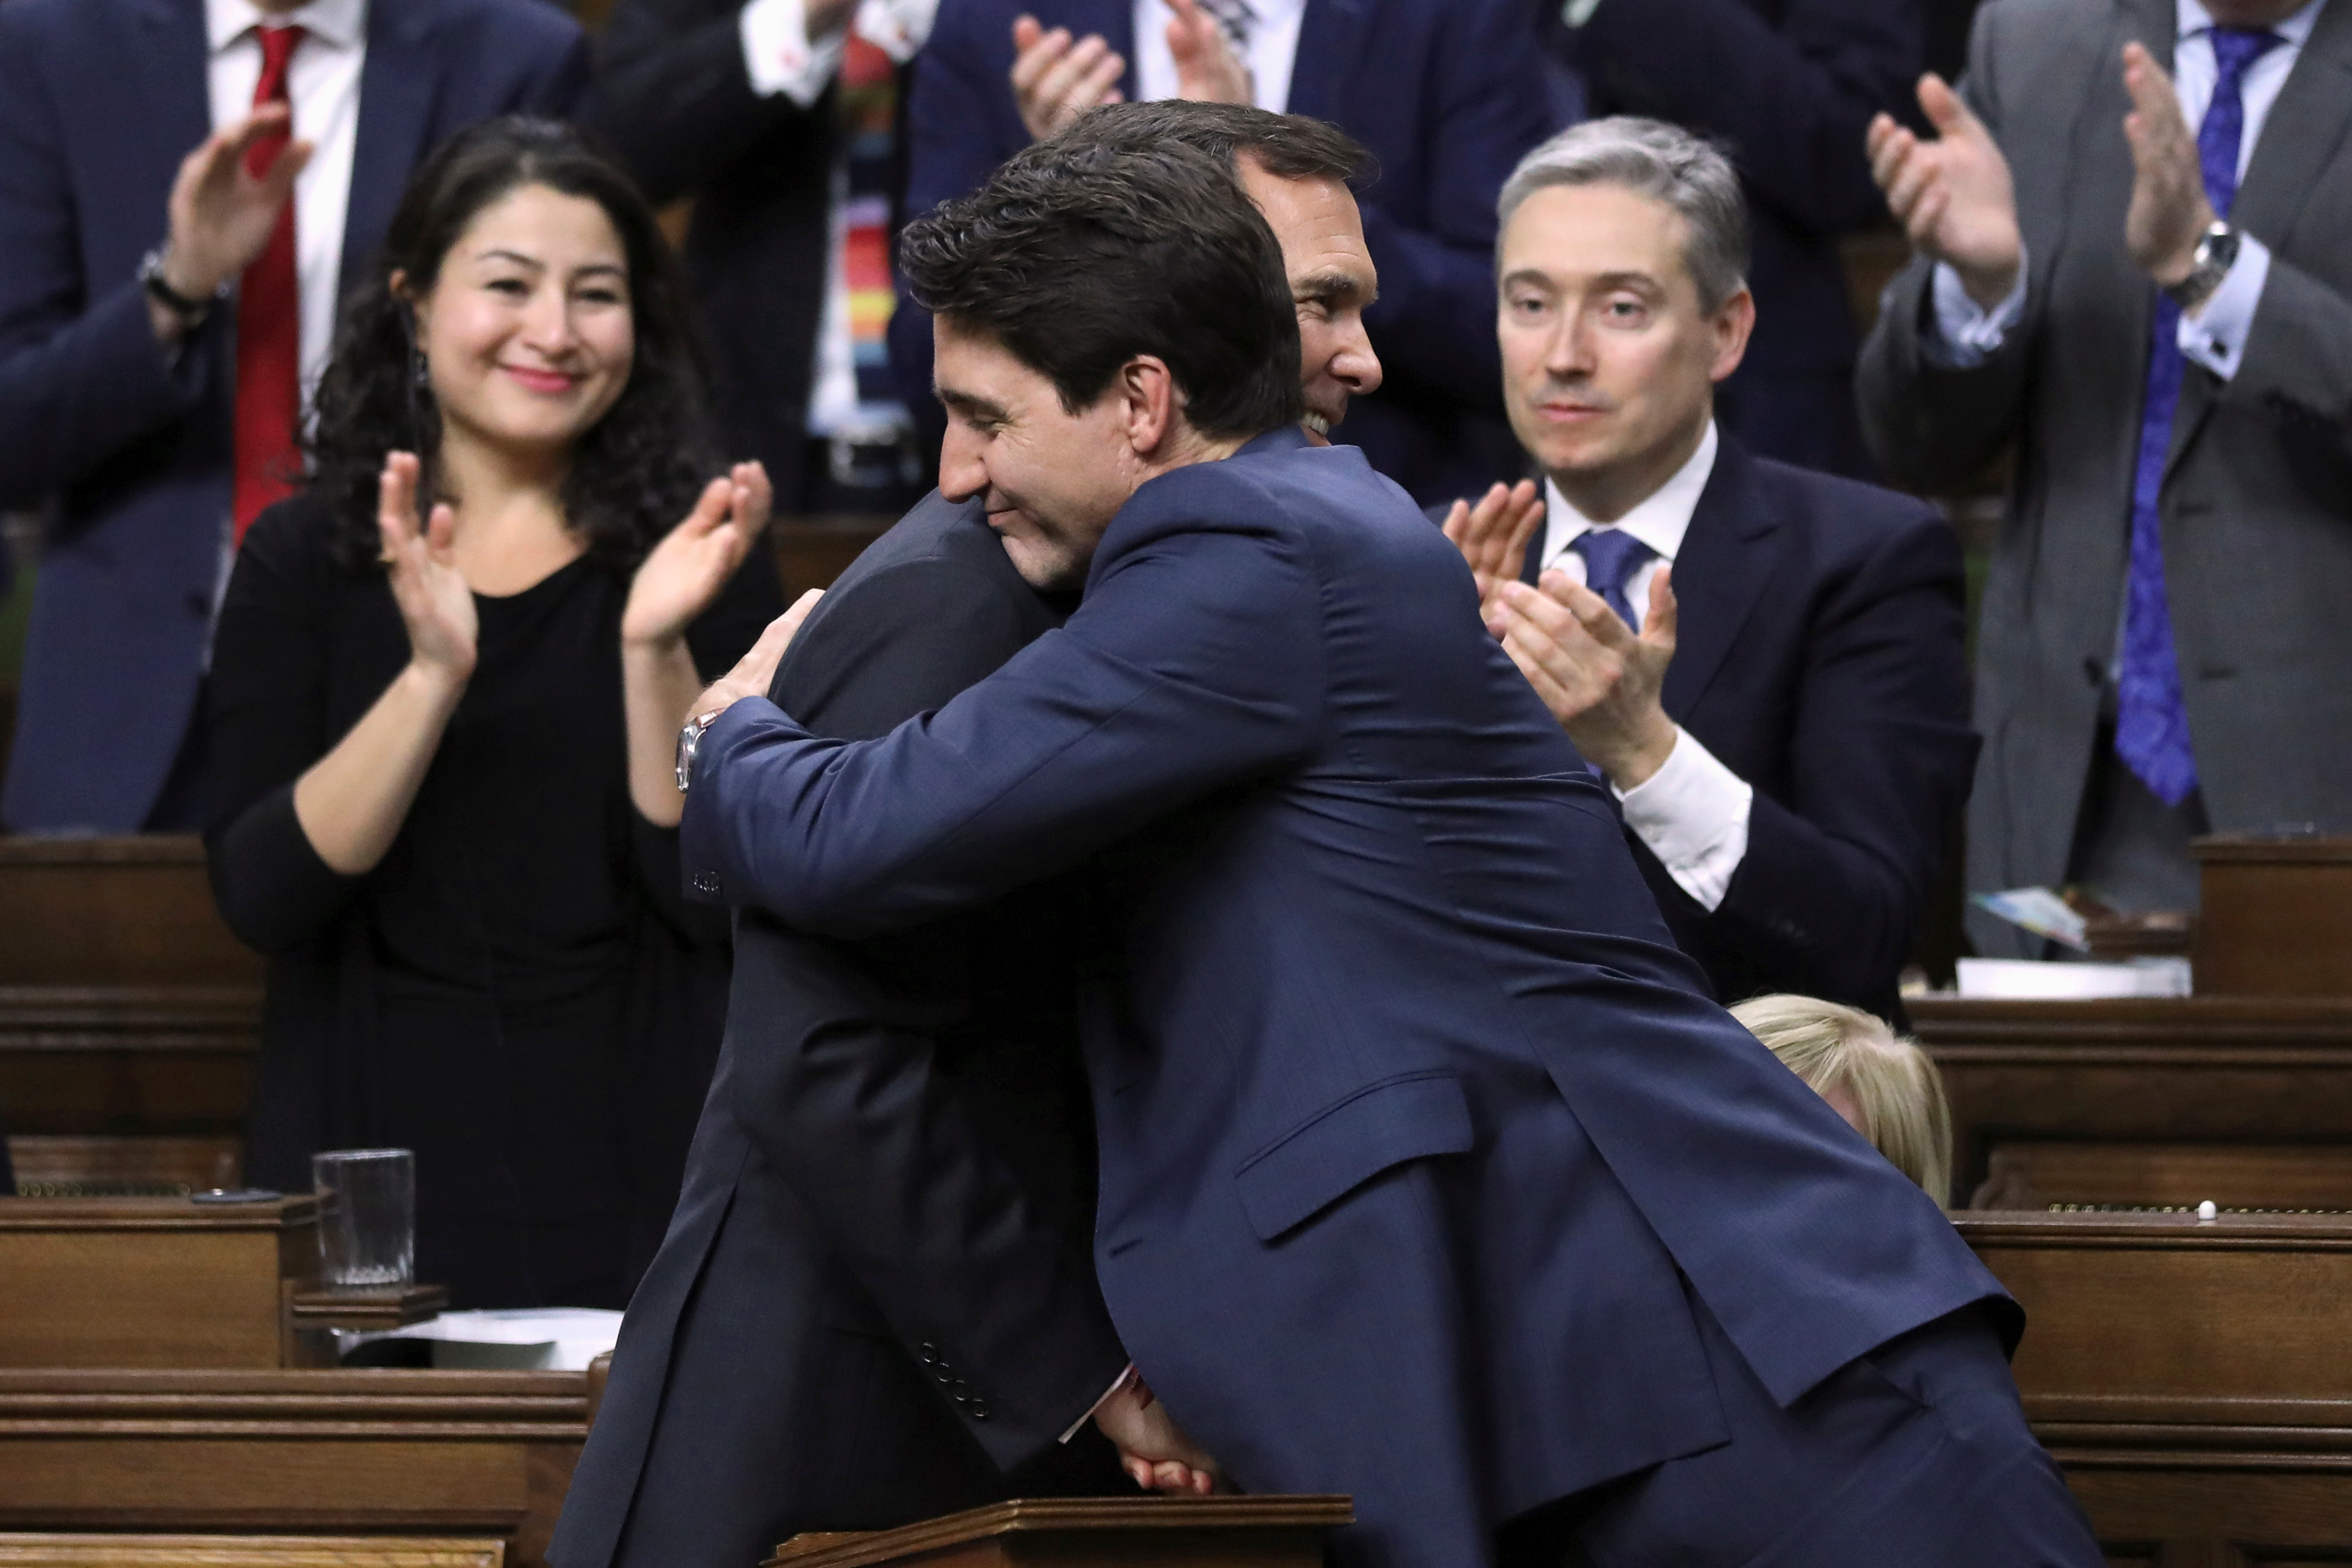 Canada's Prime Minister Justin Trudeau embraces Finance Minister Bill Morneau after Morneau delivered the budget in the House of Commons on Parliament Hill in Ottawa, Ontario, Canada, March 19, 2019. REUTERS/Chris Wattie